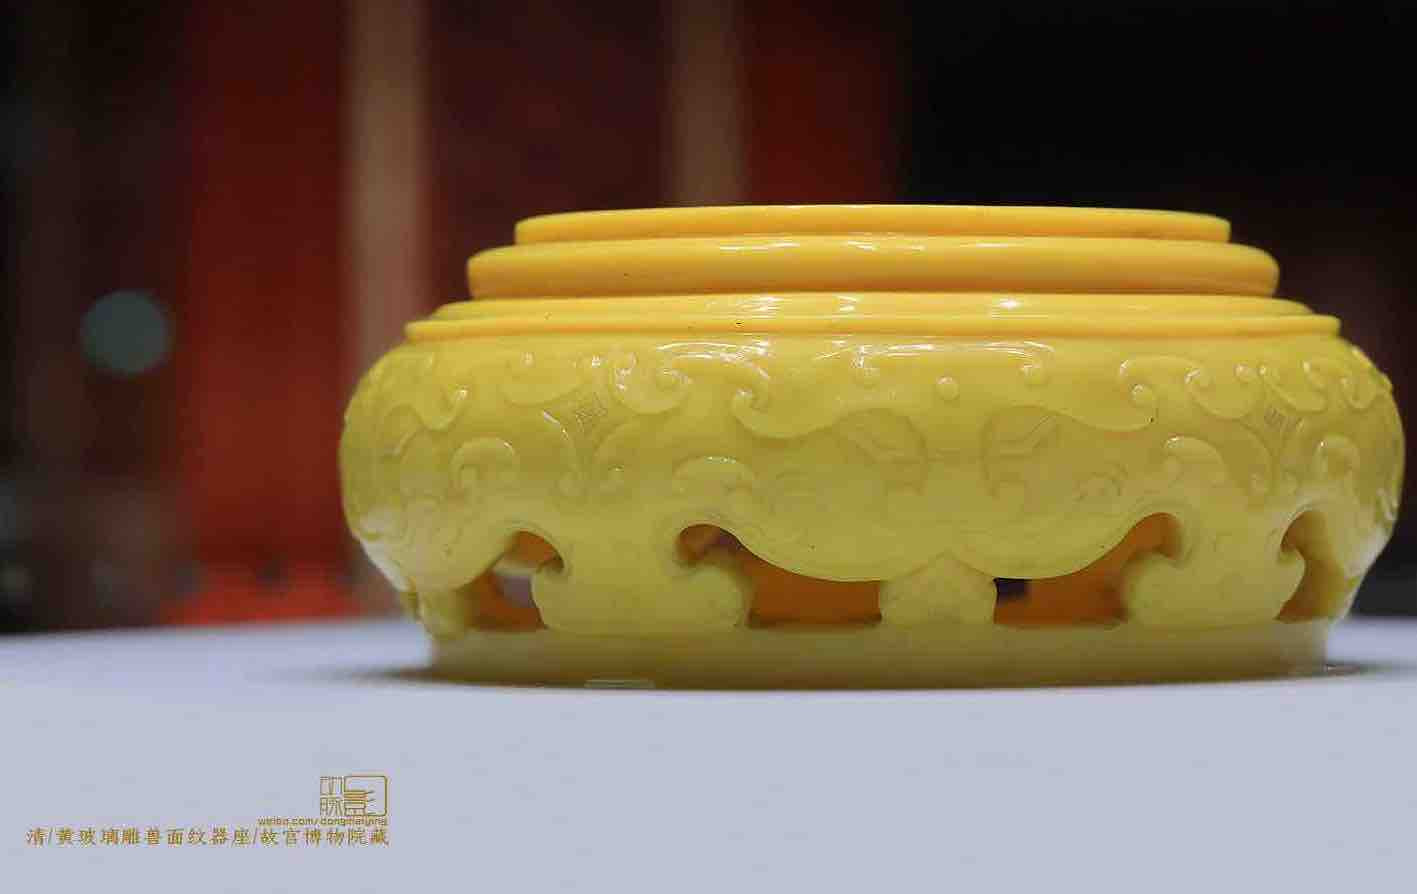 Yellow Glass Holder of the Qing Dynasty Carved with Mythical Animal Patterns — Palace Museum